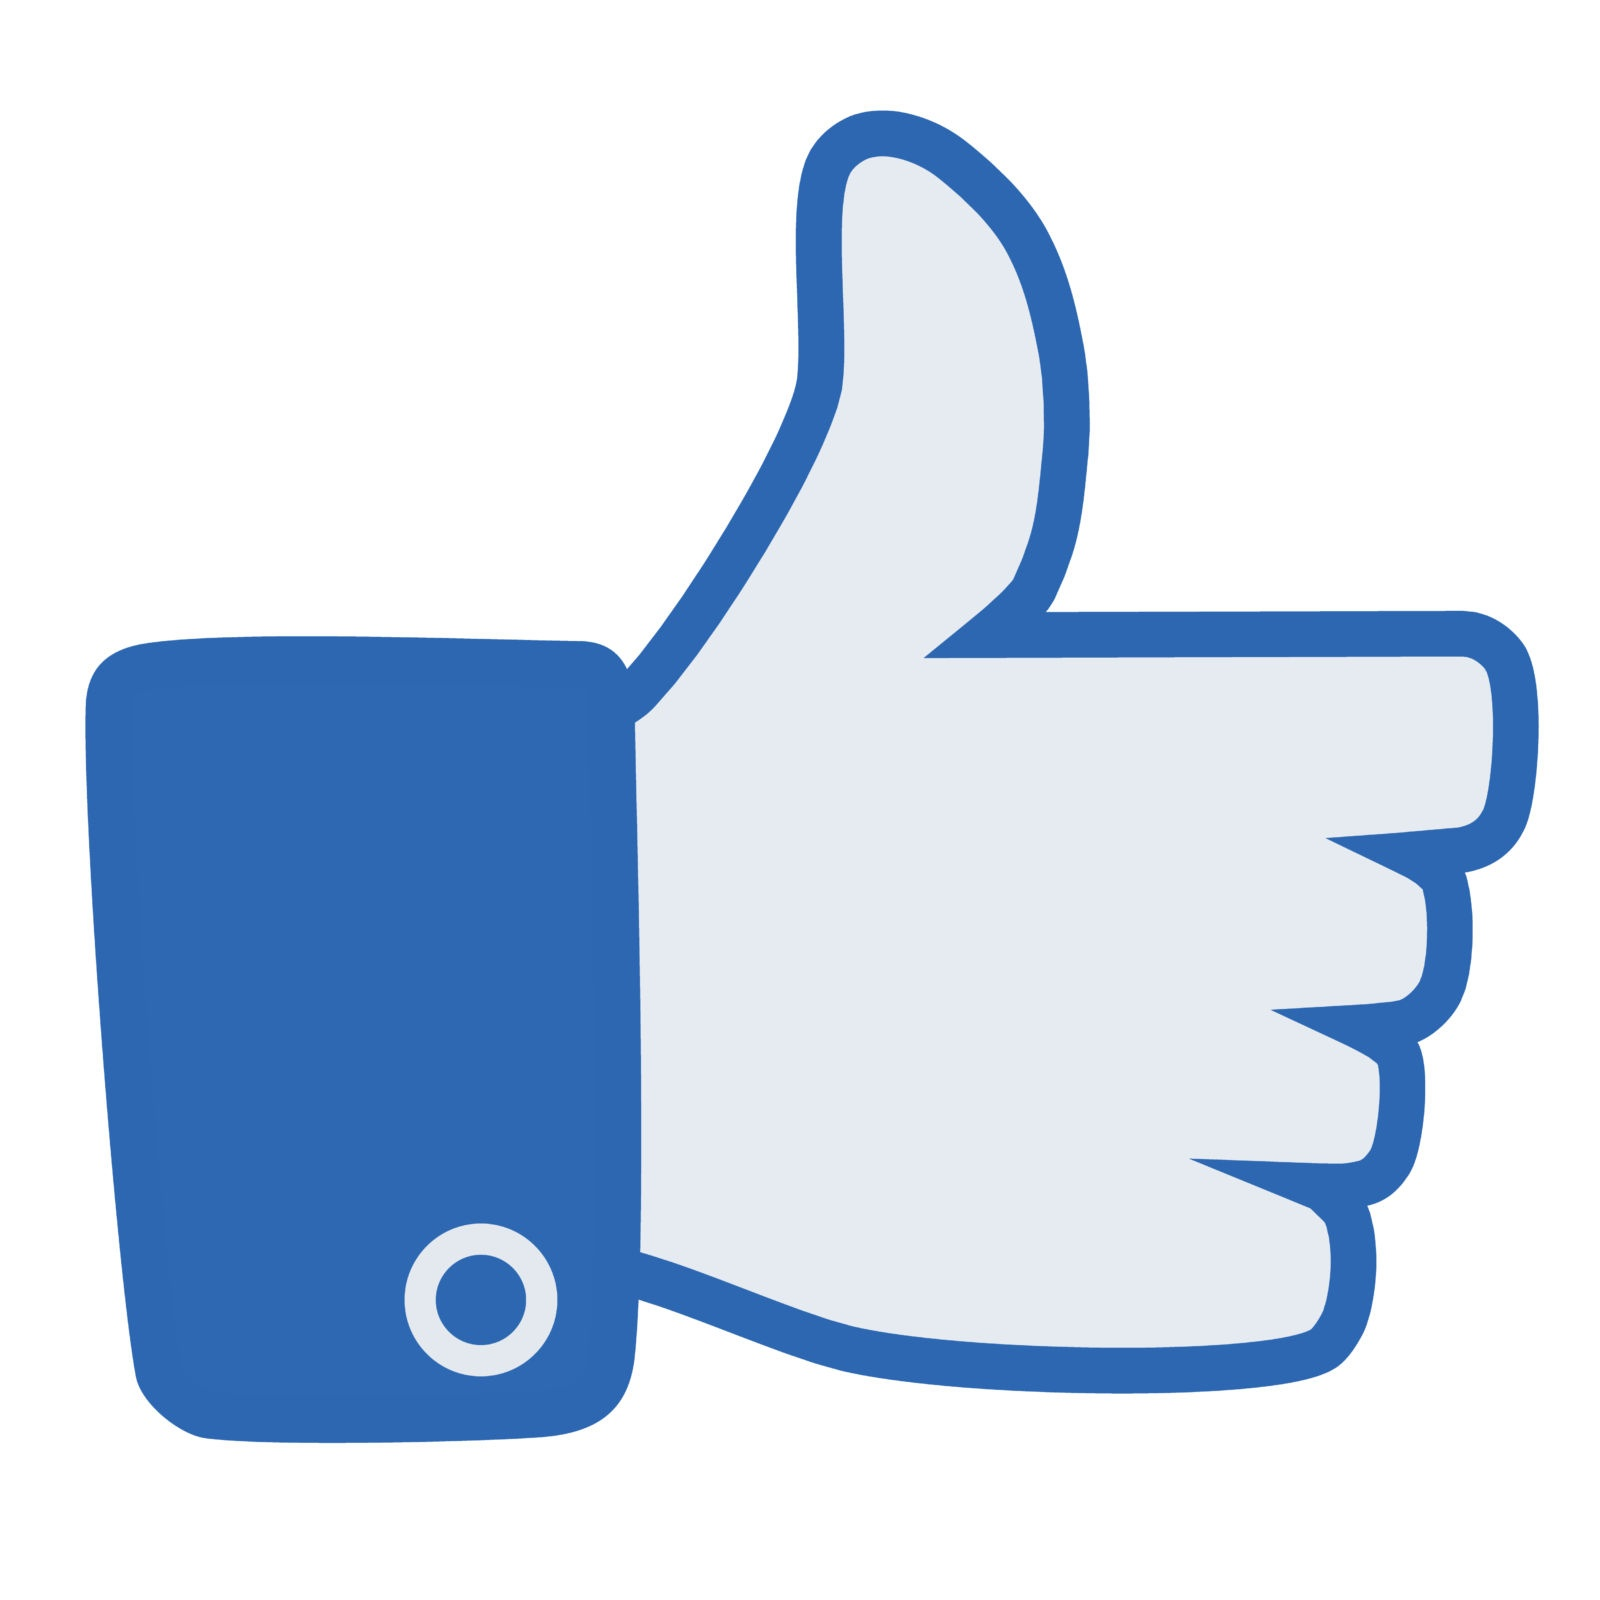 This is an image of a Facebook icon for Arena Fitness.